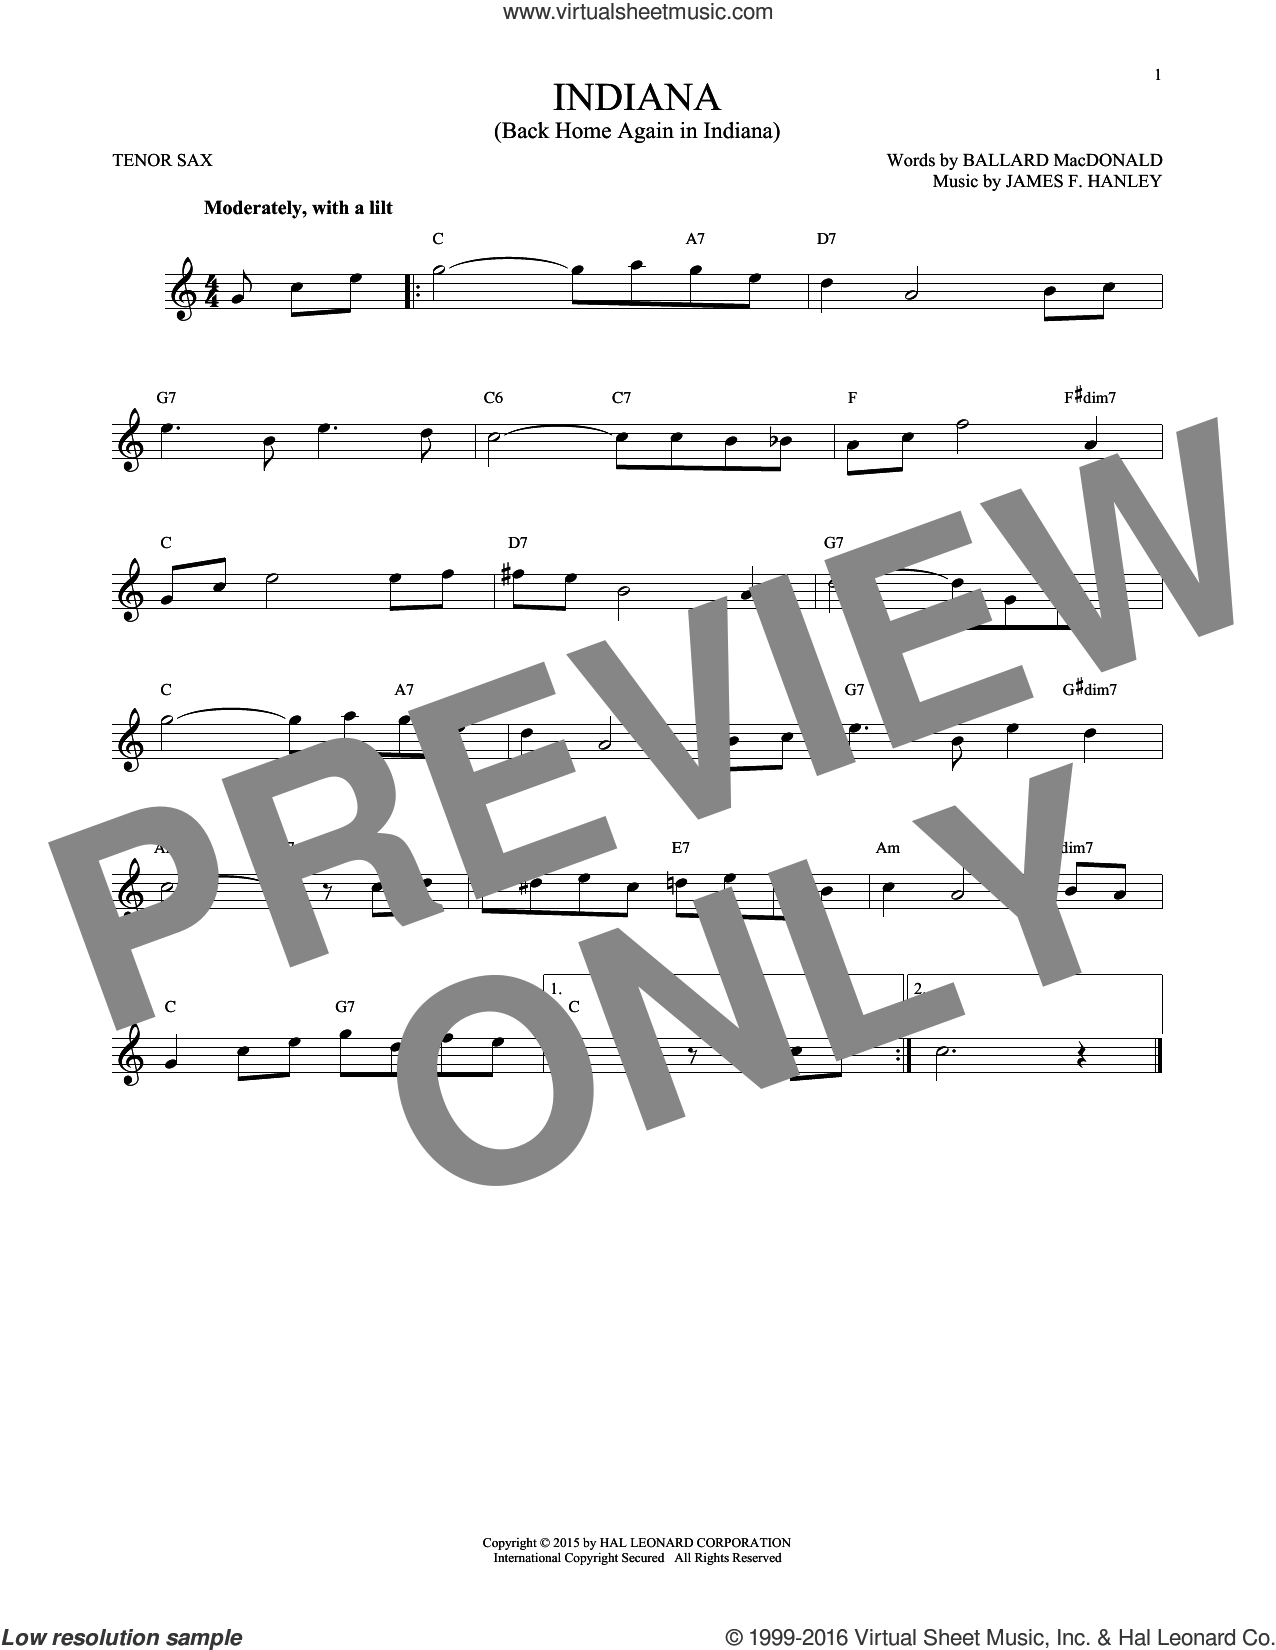 Indiana (Back Home Again In Indiana) sheet music for tenor saxophone solo by James Hanley